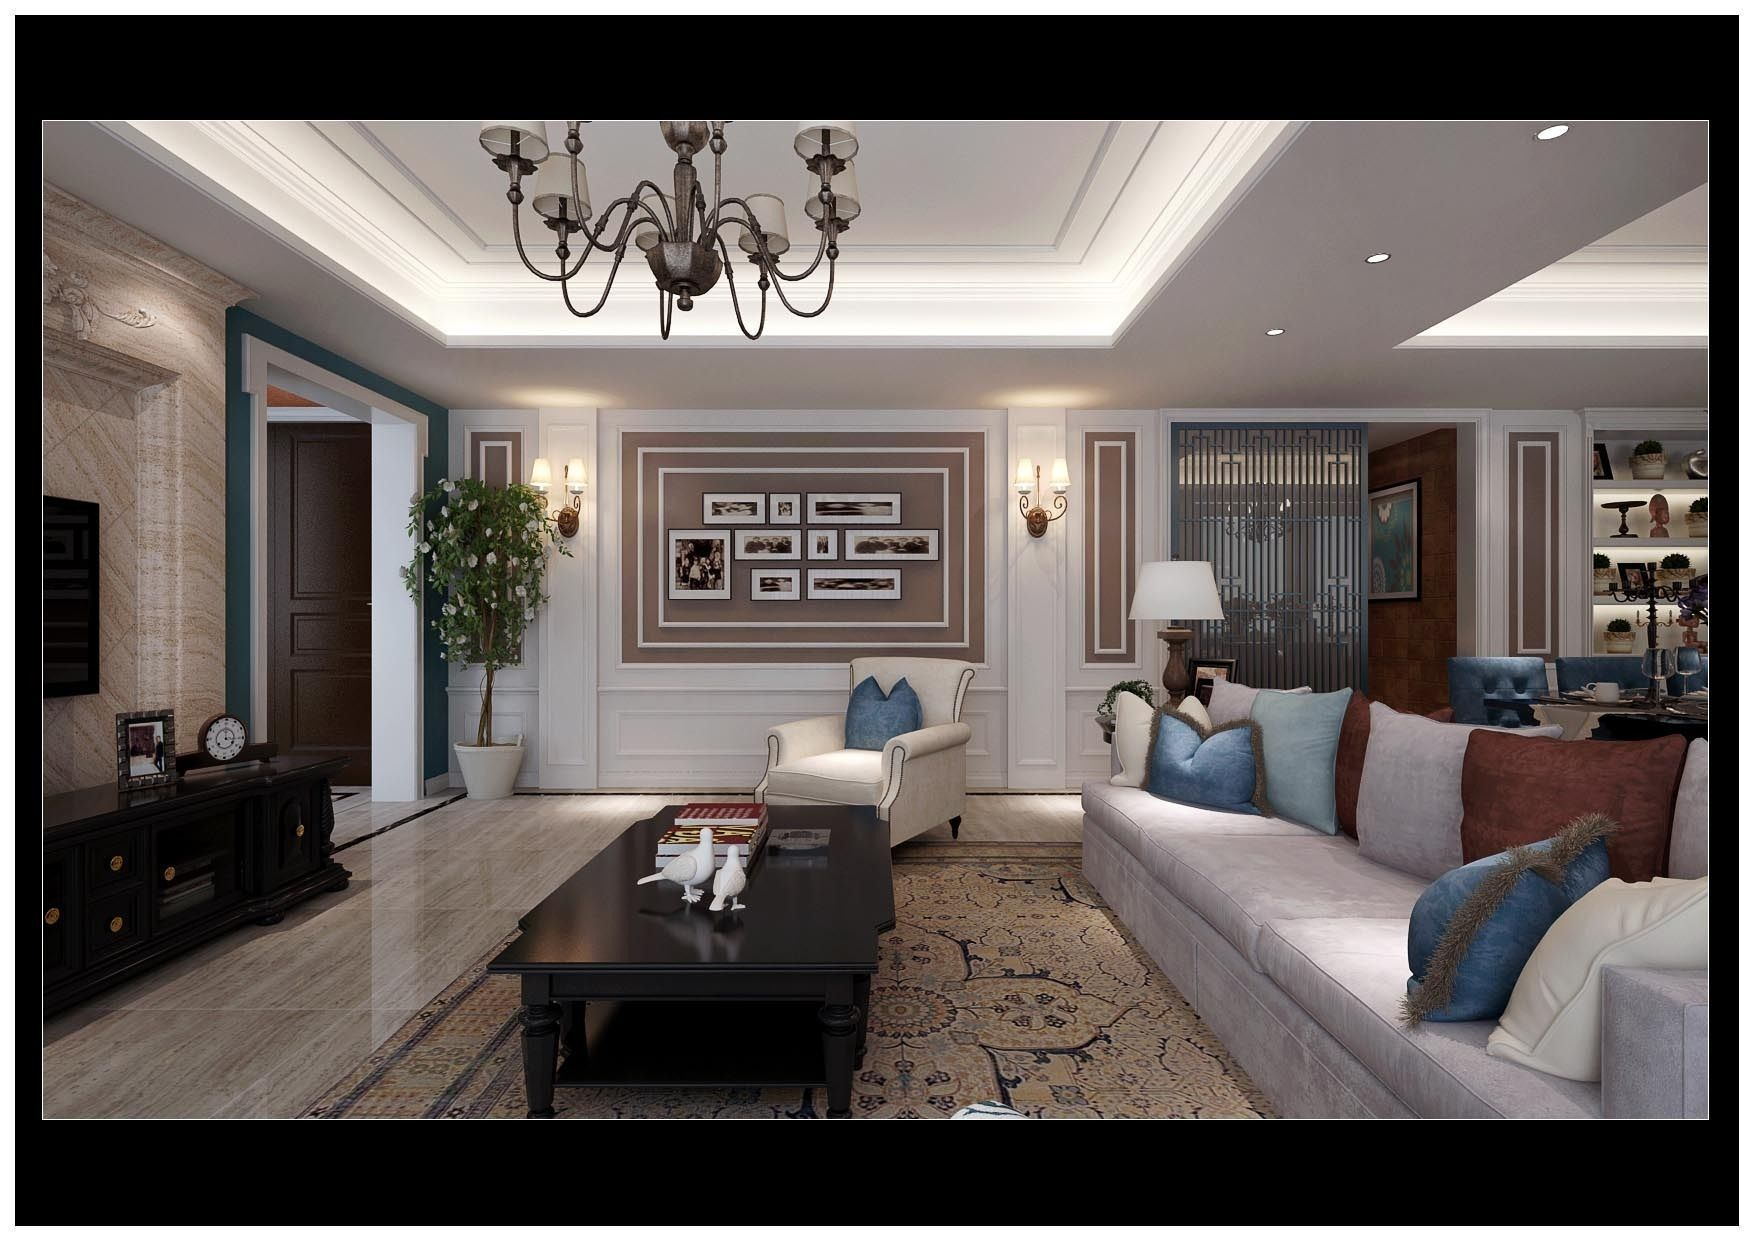 Realistic living room design 42 3d model max for Living room 3d model